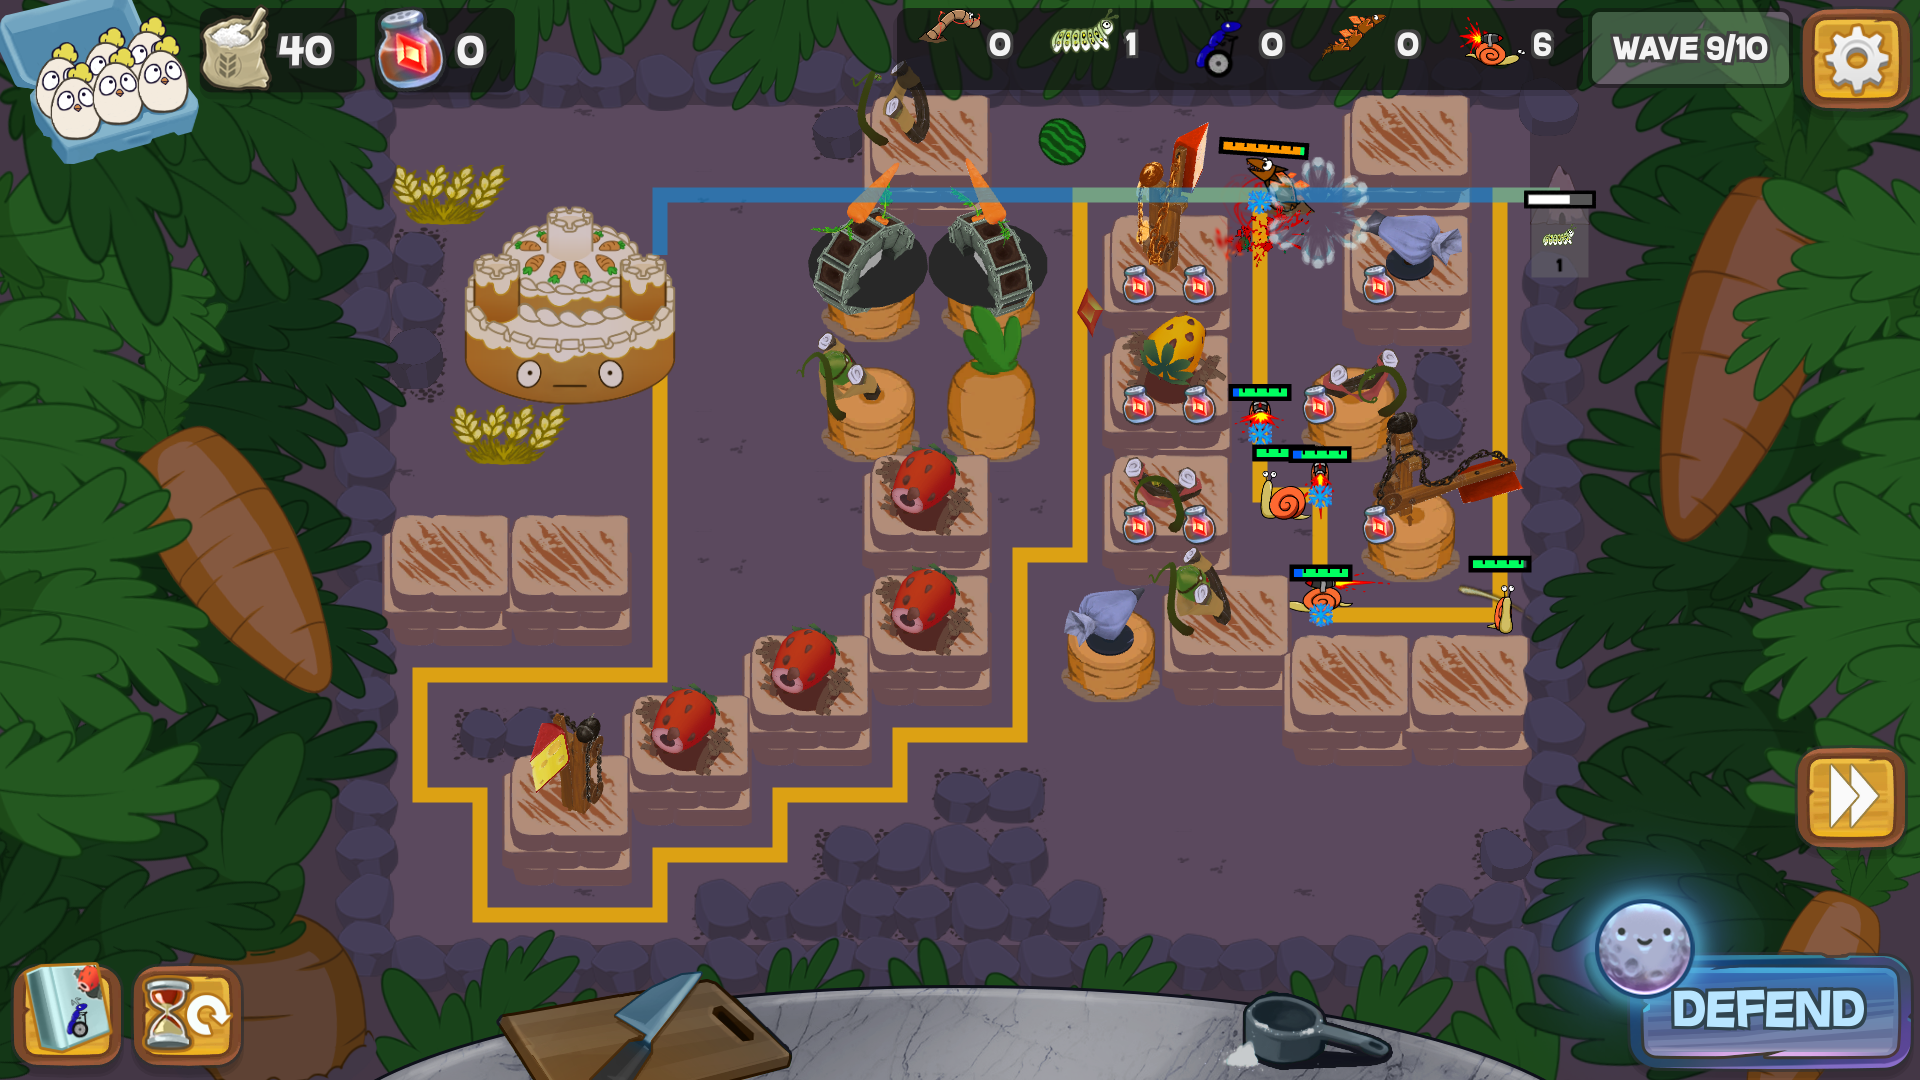 Defend the Cake launches on steam